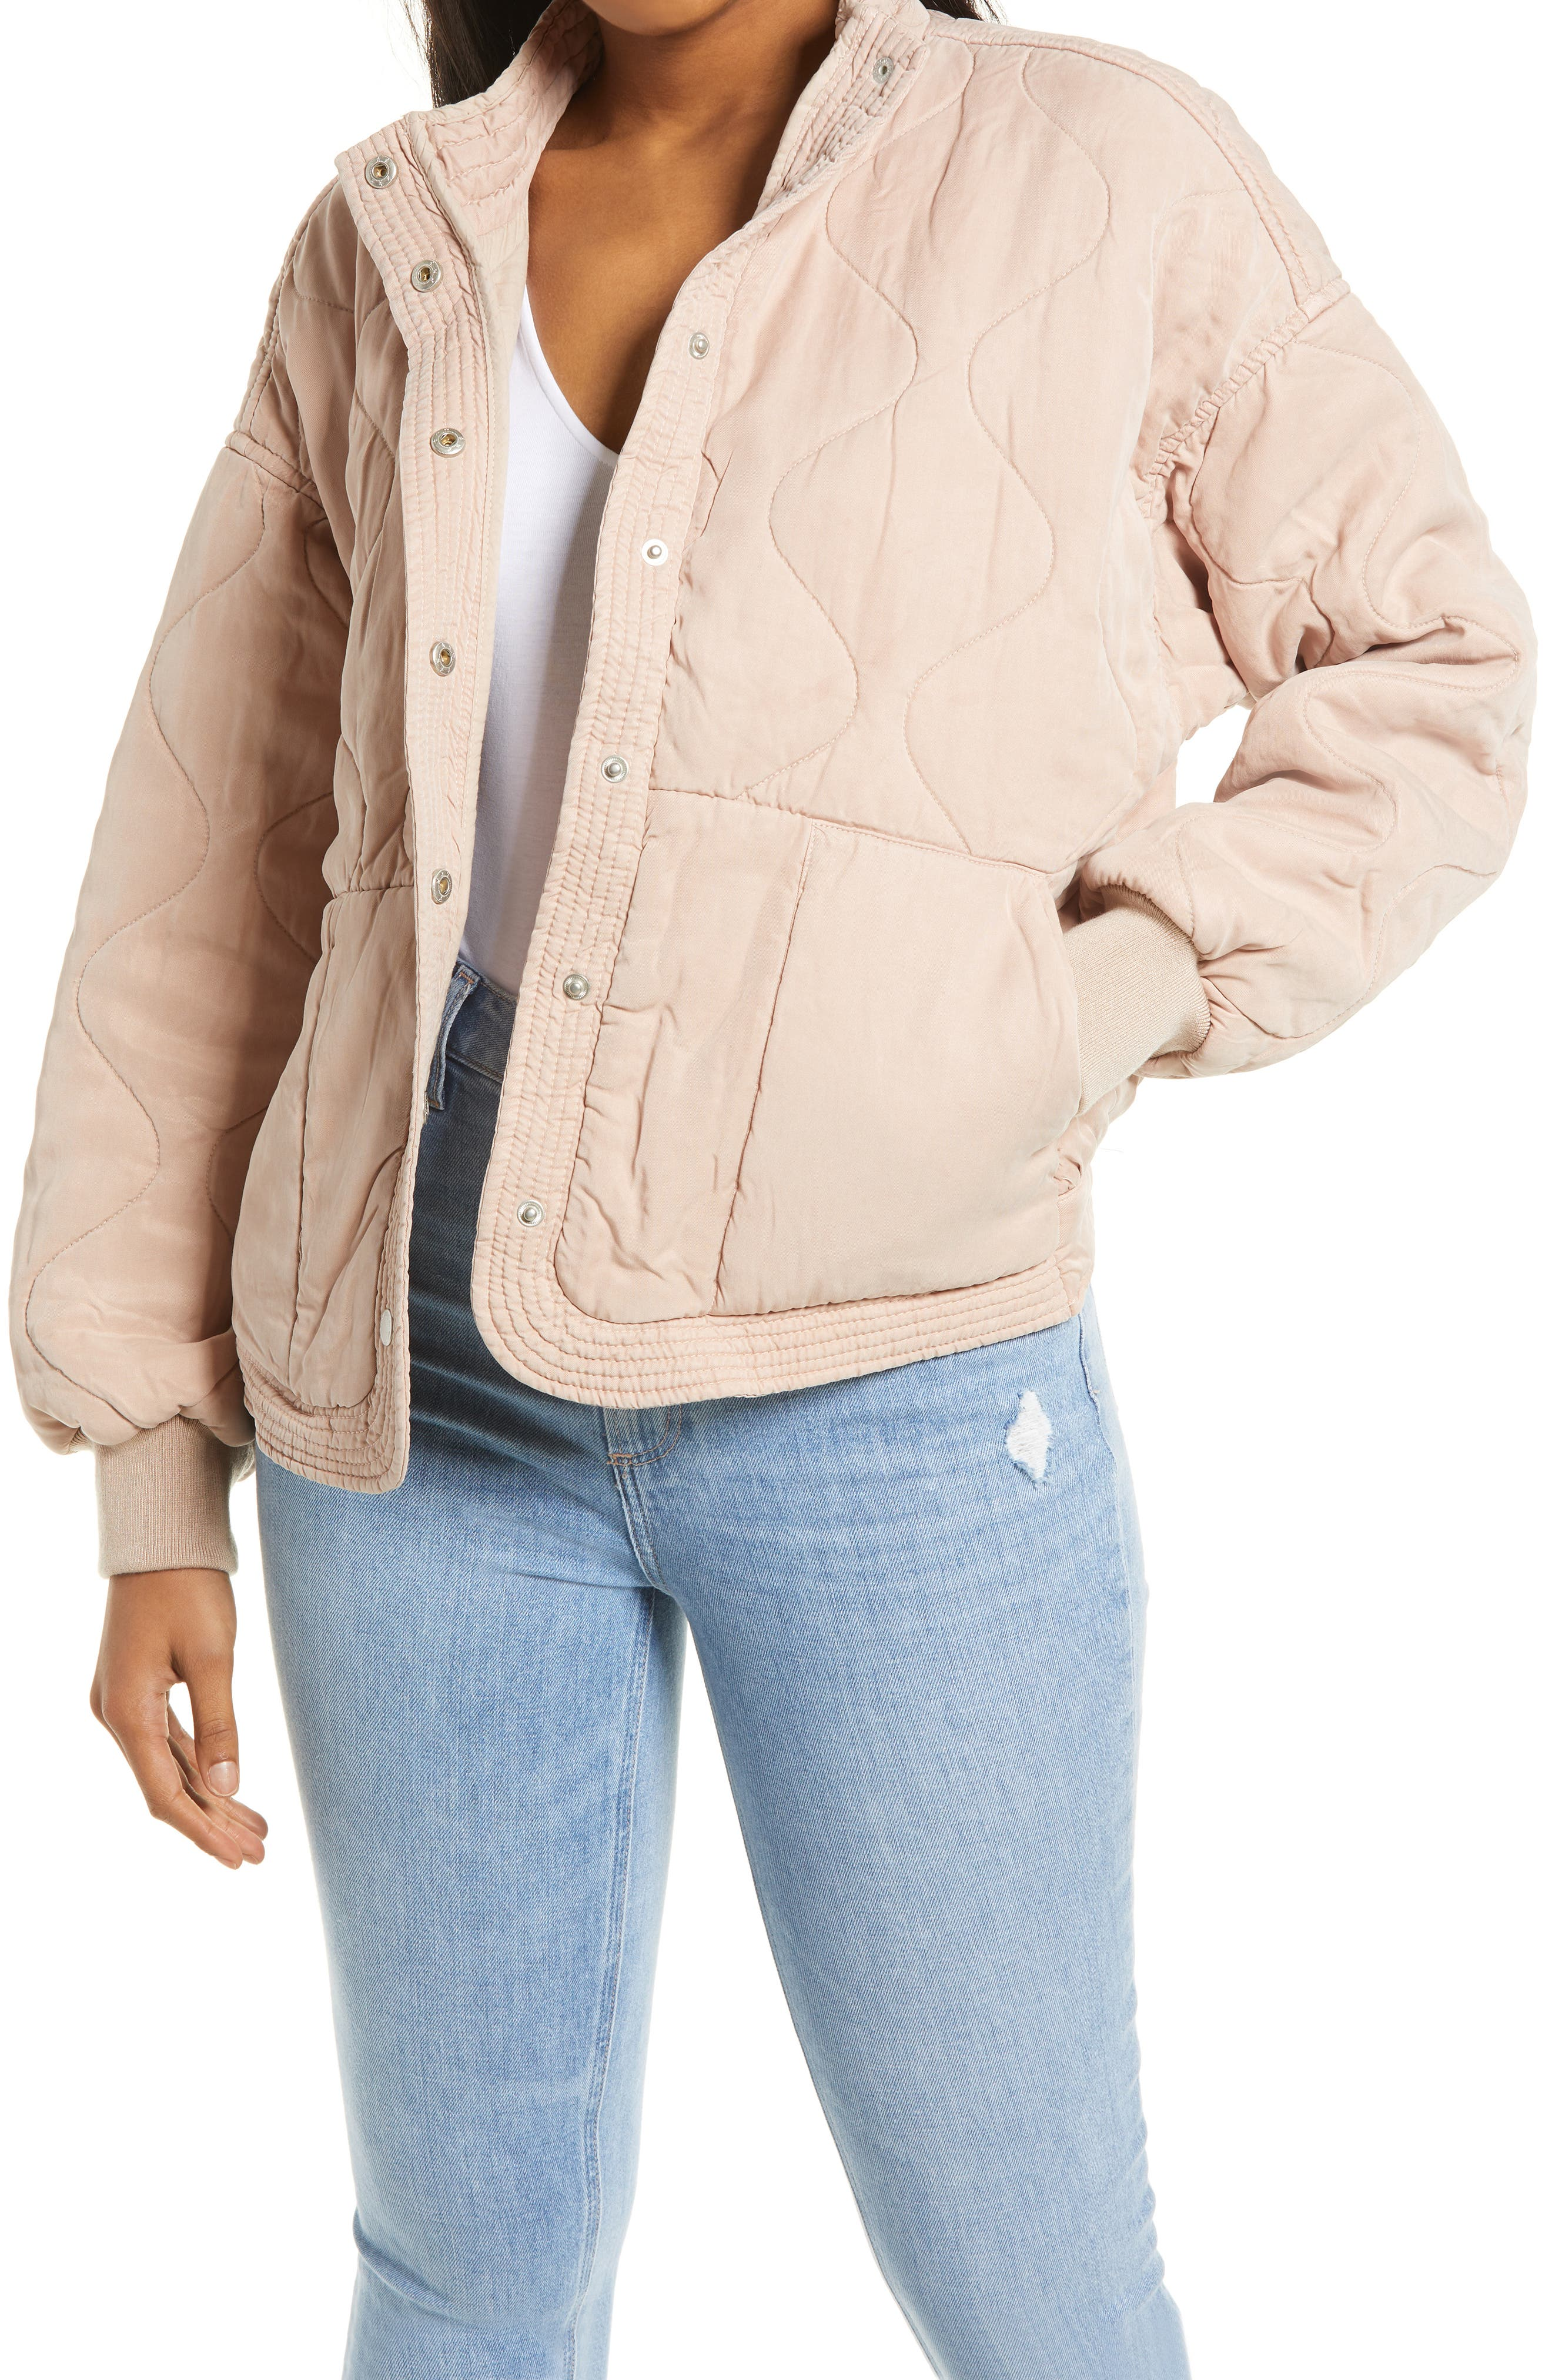 Women's Blanknyc Quilted Jacket, Size X-Small - Beige